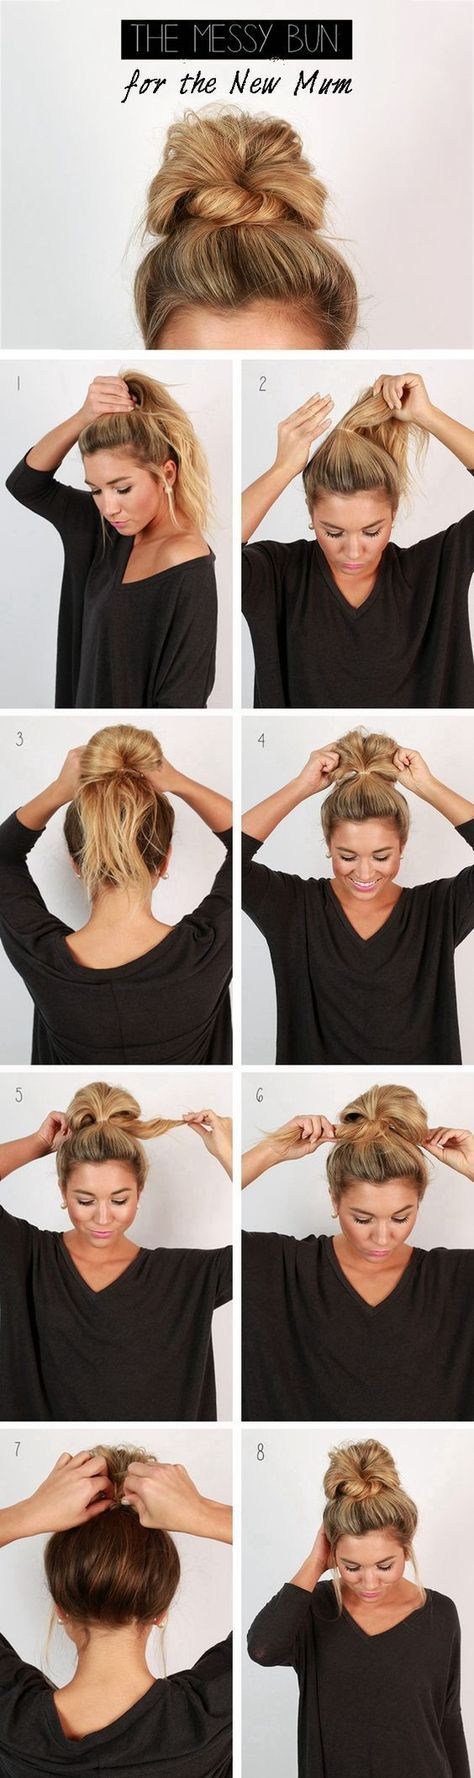 10 Hairstyles You Can Make in Less Than 2 Mins - Page 2 of 10 - Hairsea